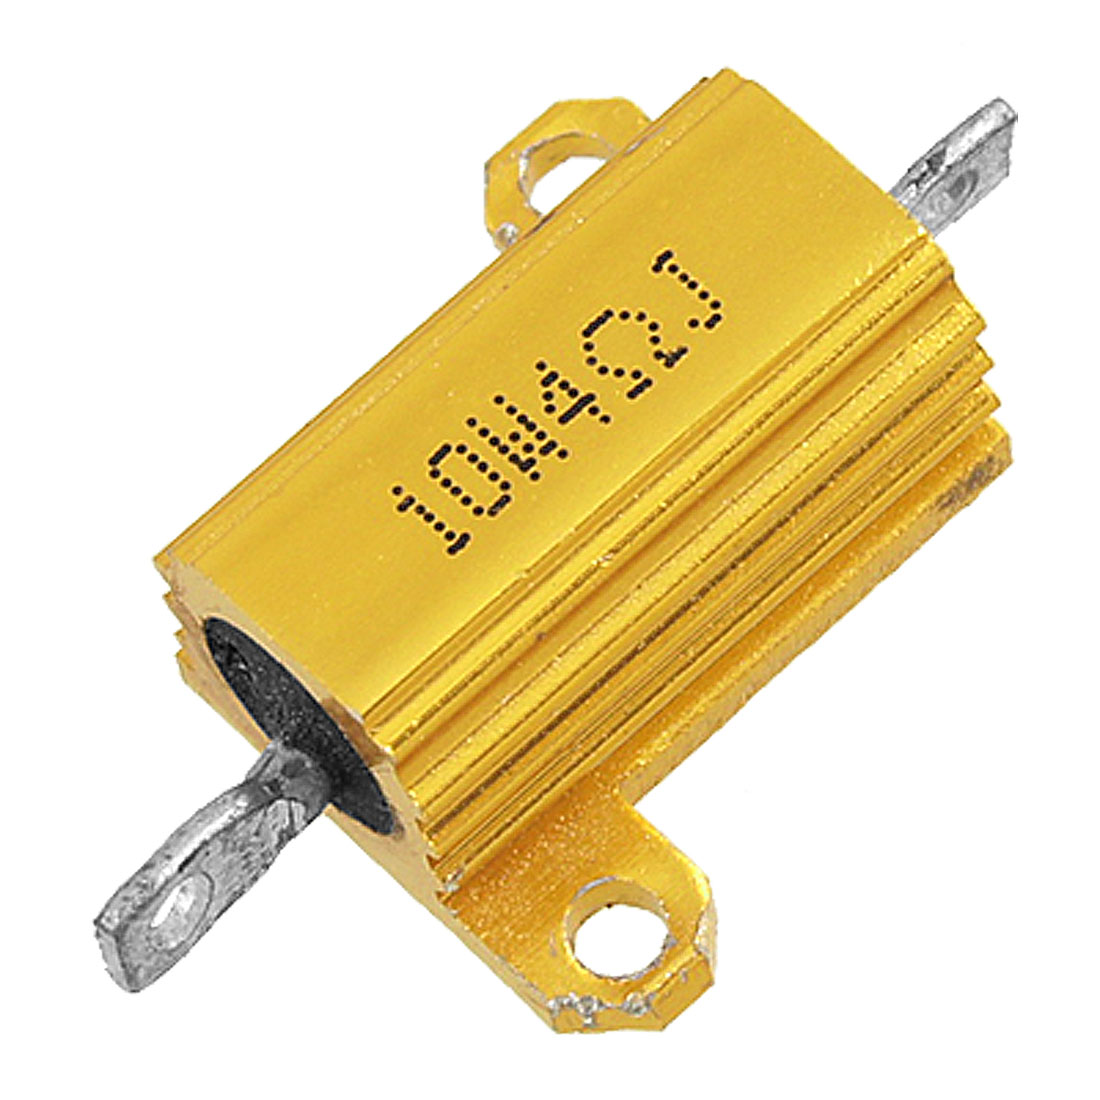 Gold Tone Aluminum Housed Wirewound Resistors 10 Watt 4 Ohm 5%